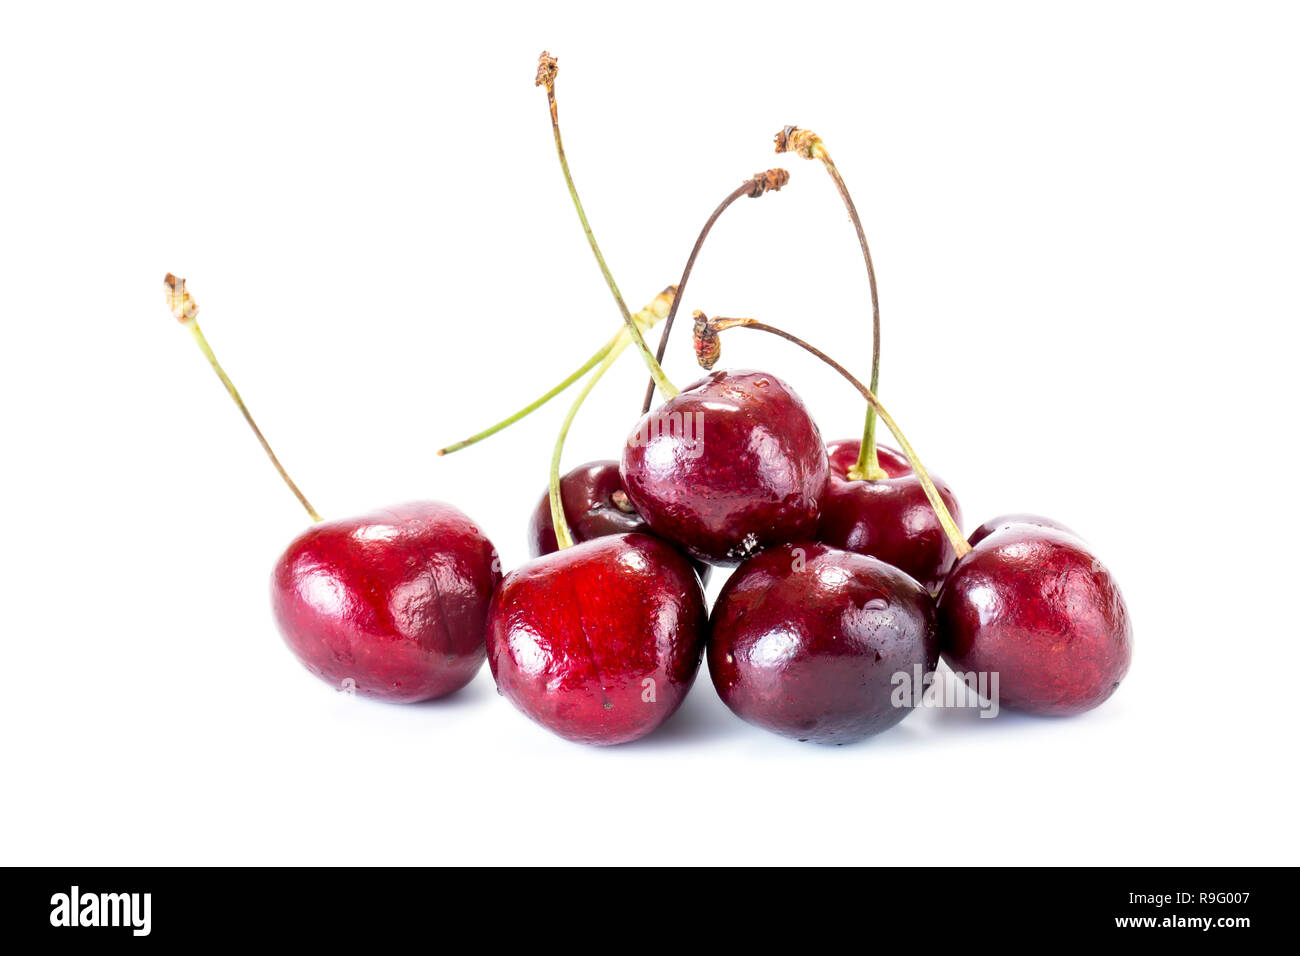 Ripe berry of sweet cherry it is isolated on a white background - Stock Image